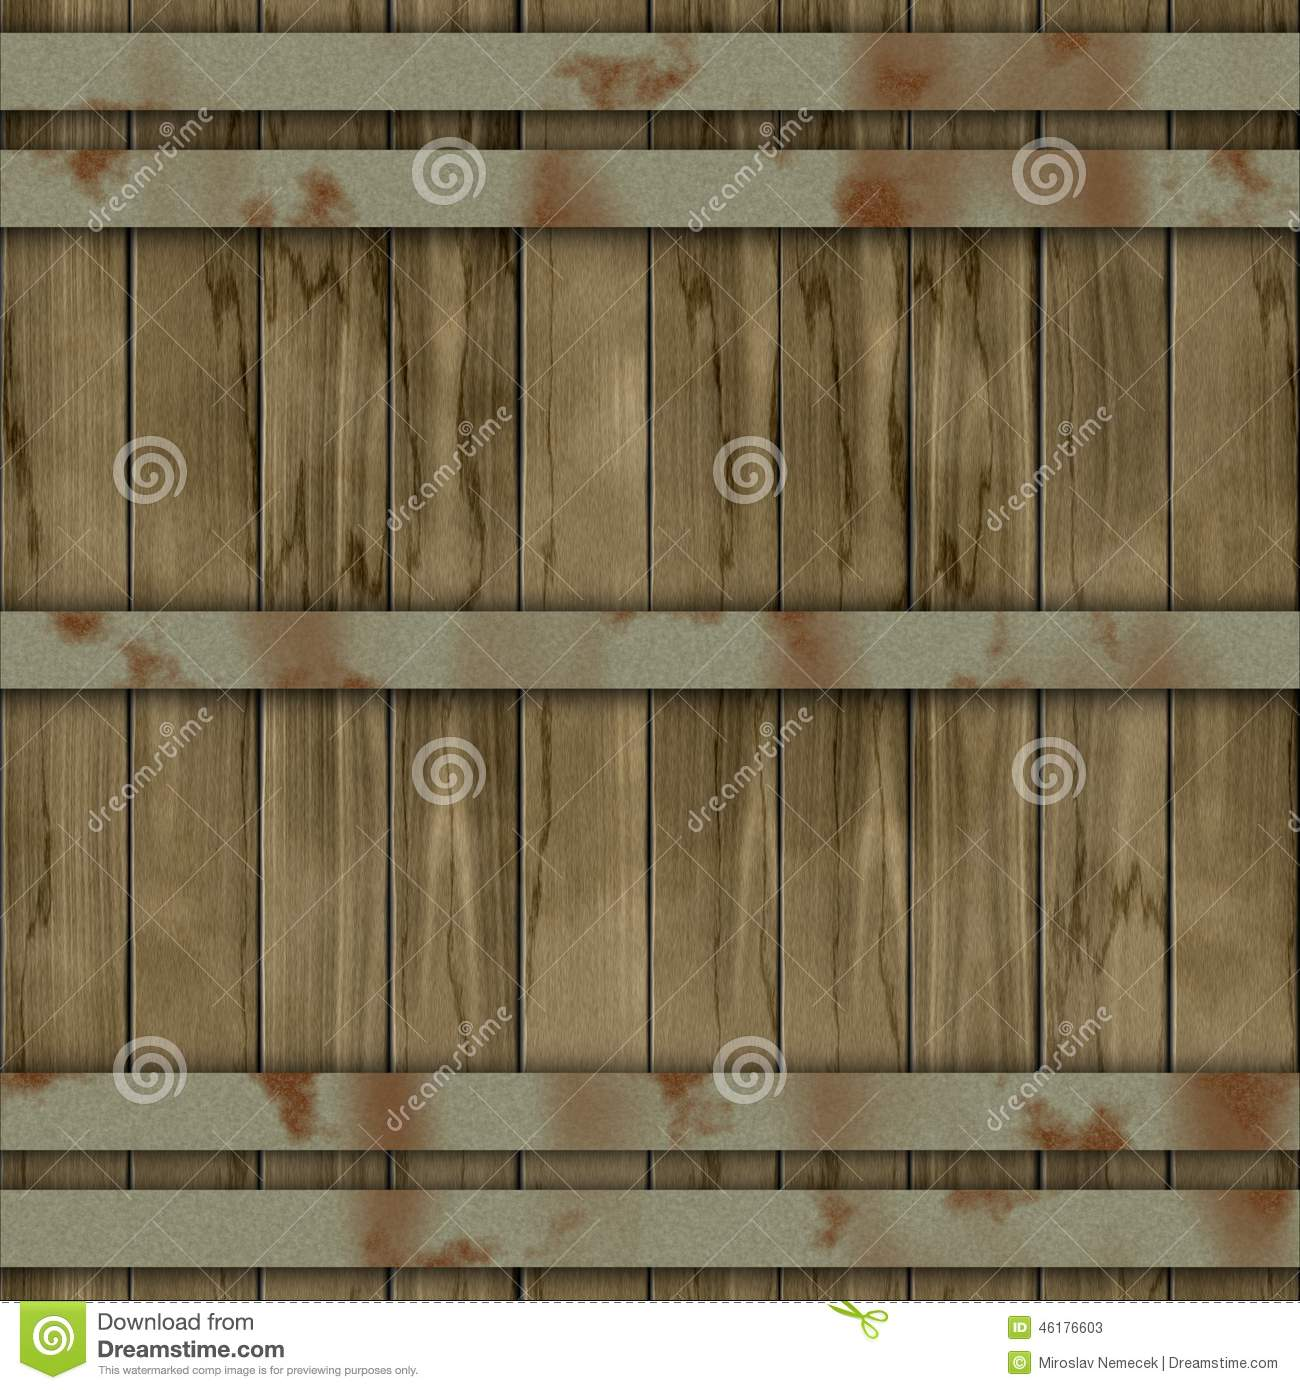 Wood Barrel Generated Seamless Hires Texture Stock